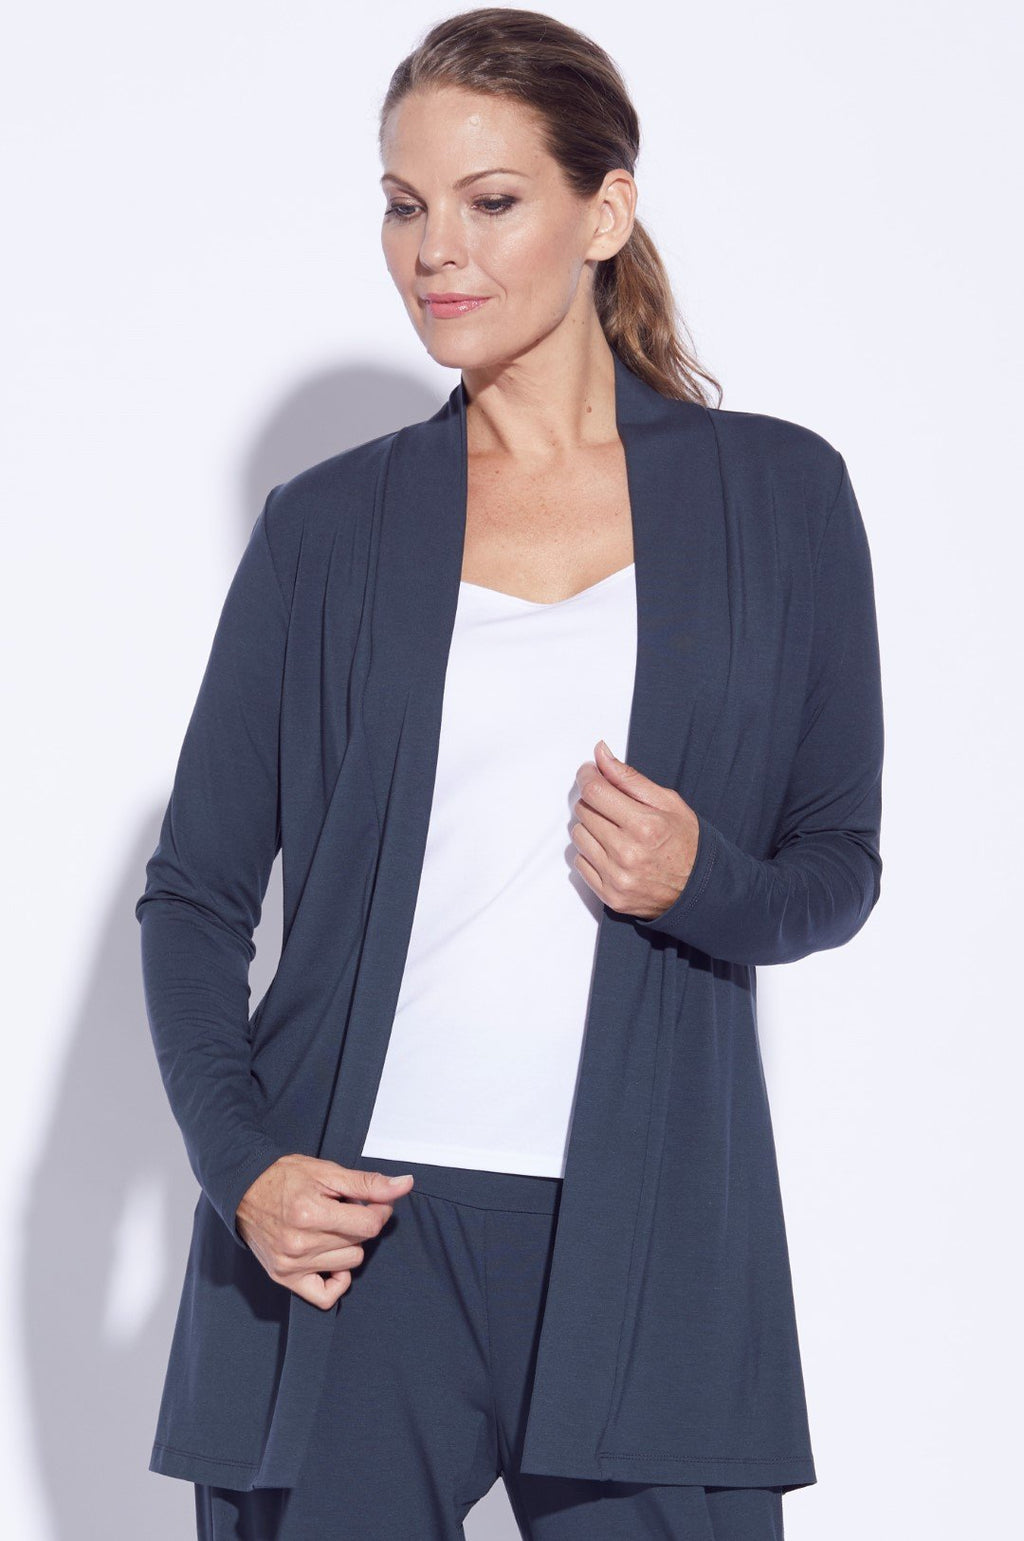 PAULA RYAN ESSENTIALS Edge To Edge Waisted Cardigan - MicroModal - Cardigan - Paula Ryan Essentials - Paula Ryan